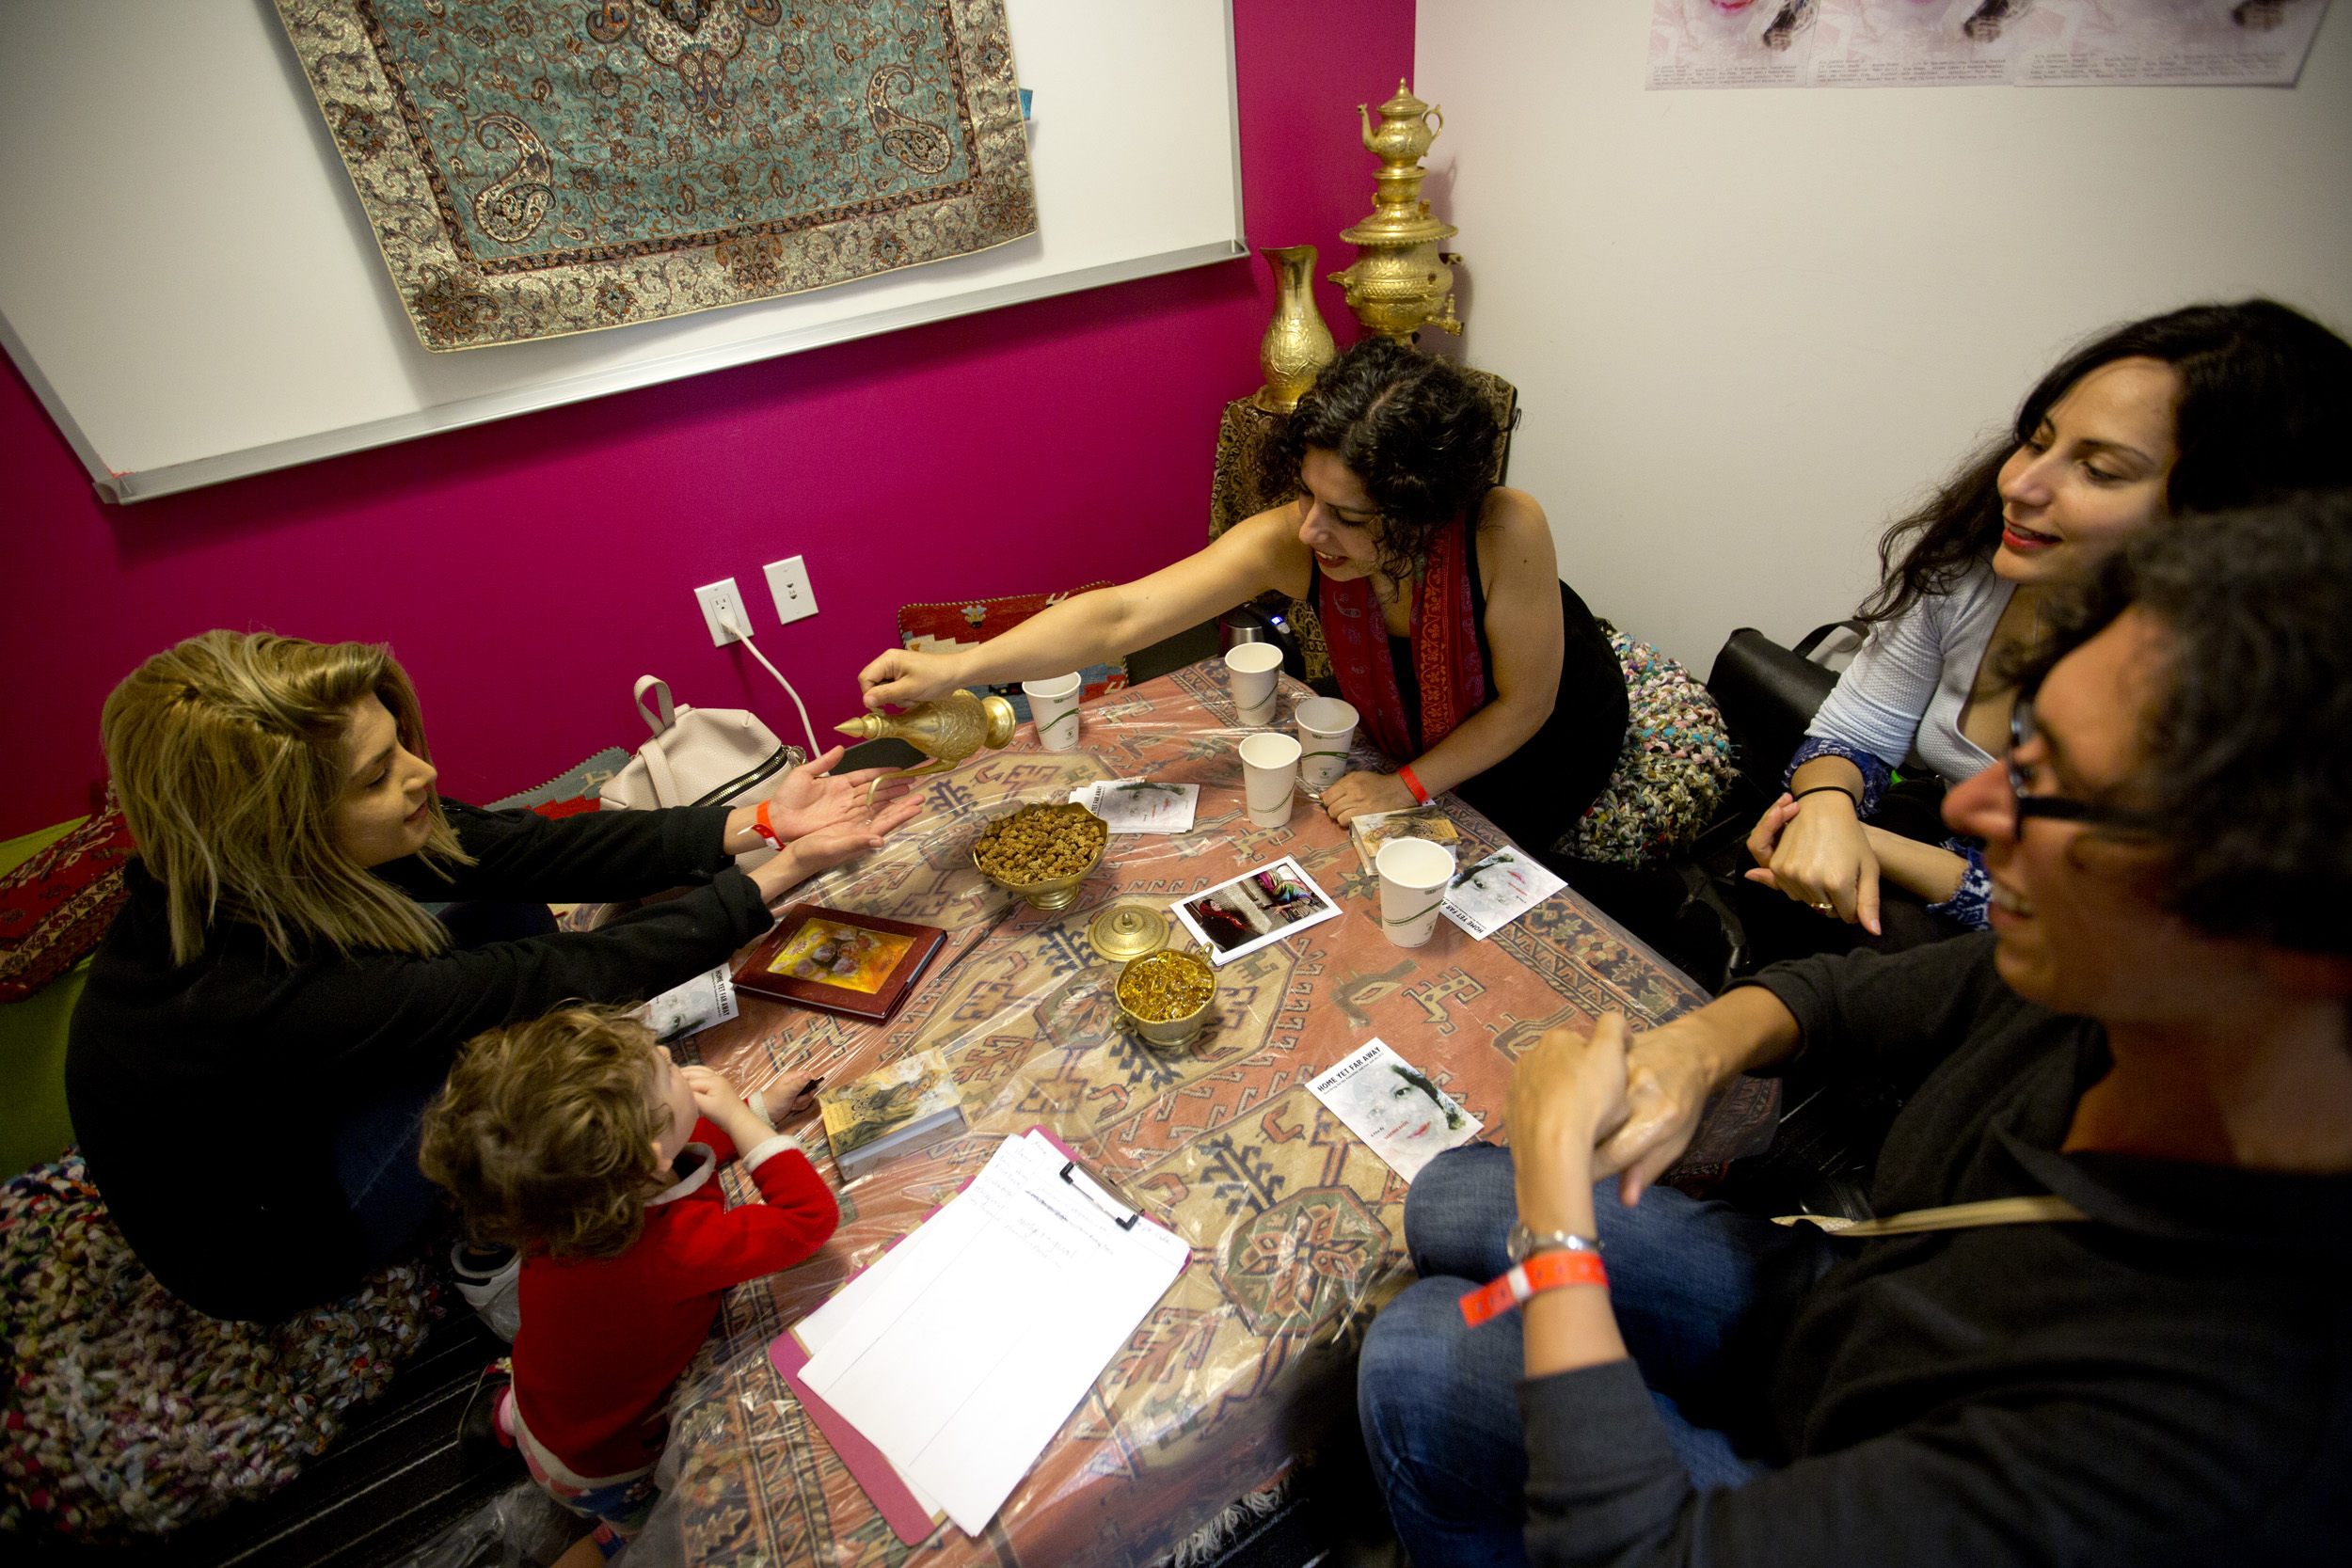 What if we valued cultural traditions that create social cohesion along with financial resources when we thought of a community's value? - Sabereh Kashi, Home Yet Far Away Persian Tea House at YBCA Public Square. Photo Tommy Lau.